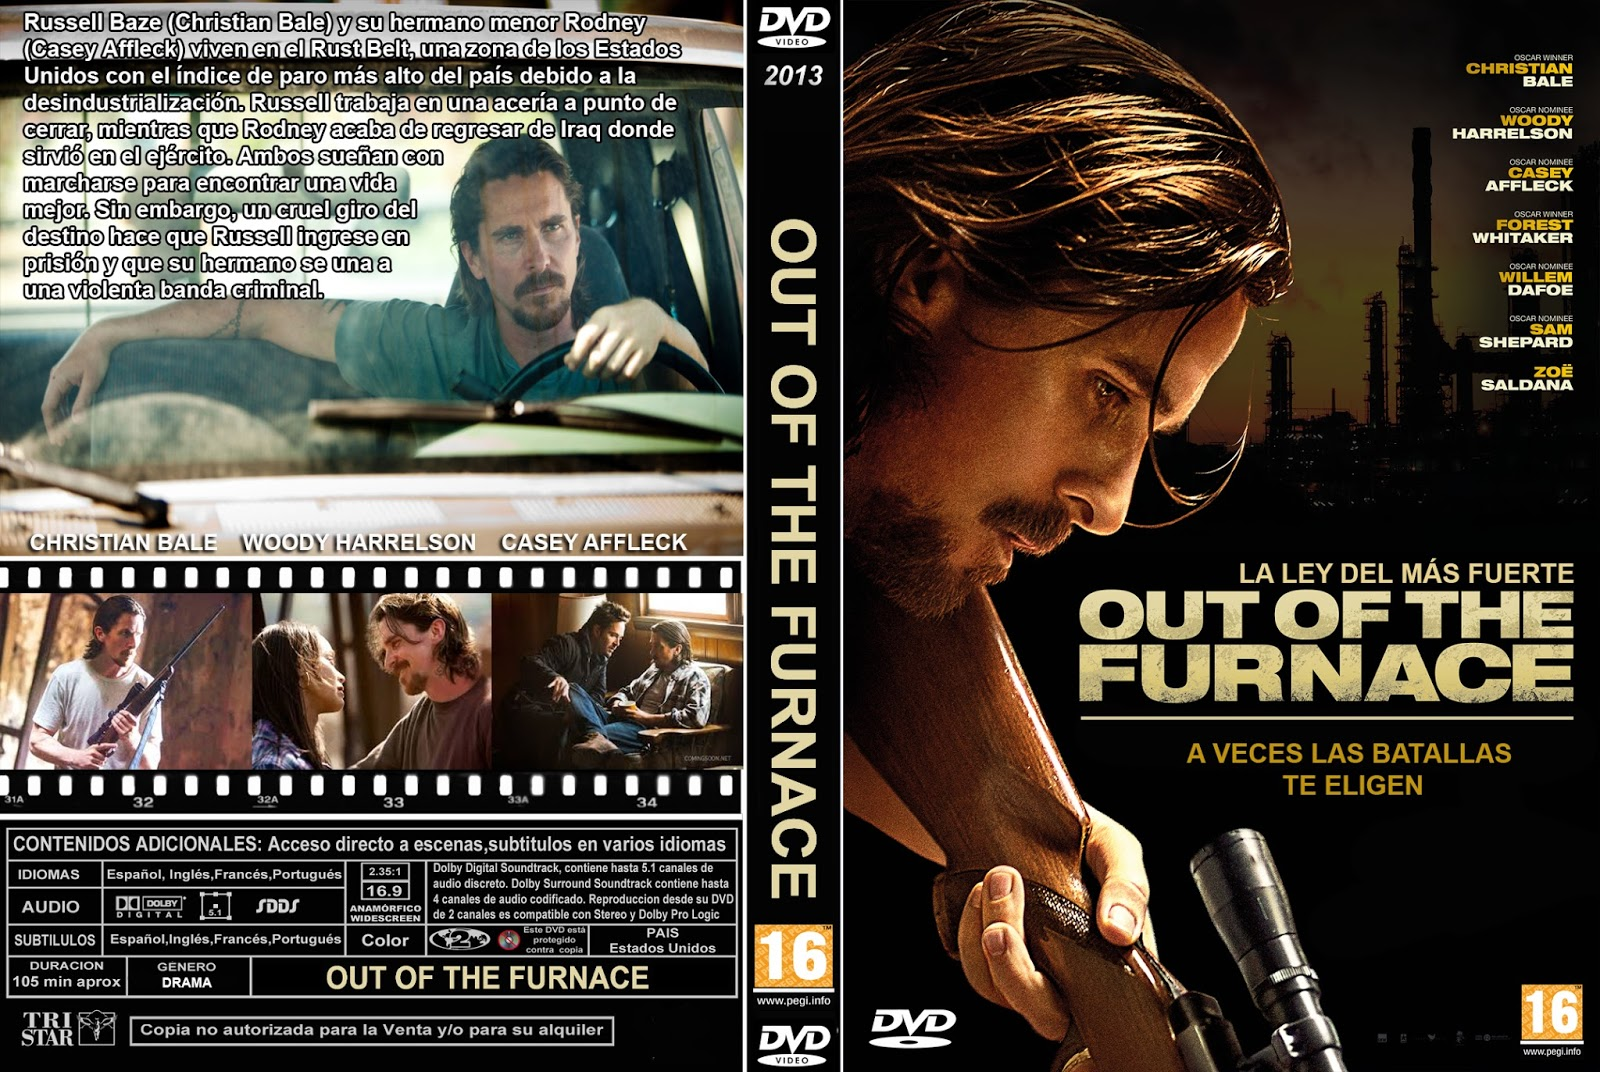 PB | DVD Cover / Caratula FREE: OUT OF THE FURNACE - DVD ...